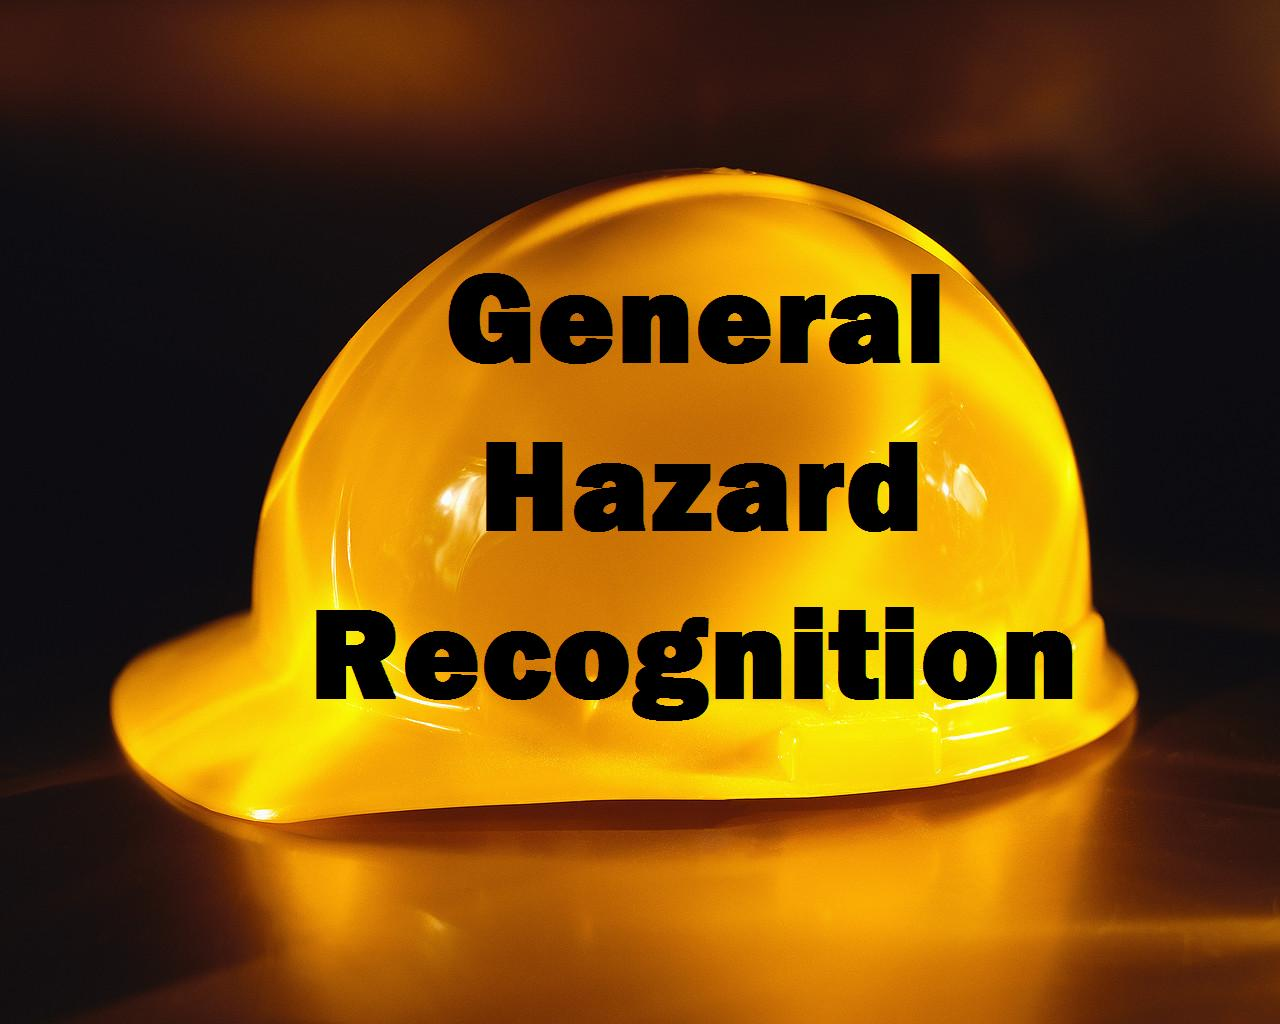 General Hazards Recognition